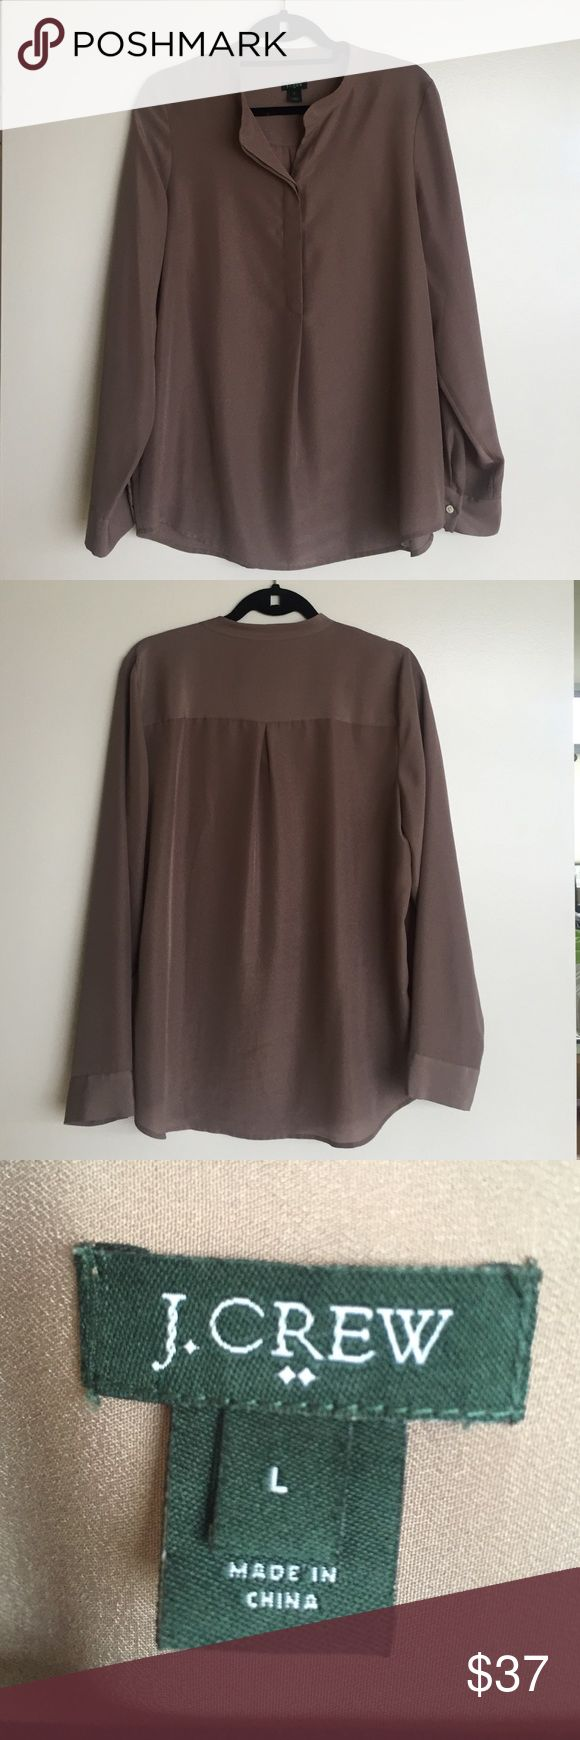 Taupe long sleeve blouse Taupe color blouse from J.Crew. Mandarin-type collar, front plank button closure, long sleeves, functional buttons at cuffs, 100% polyester, J. Crew Tops Blouses